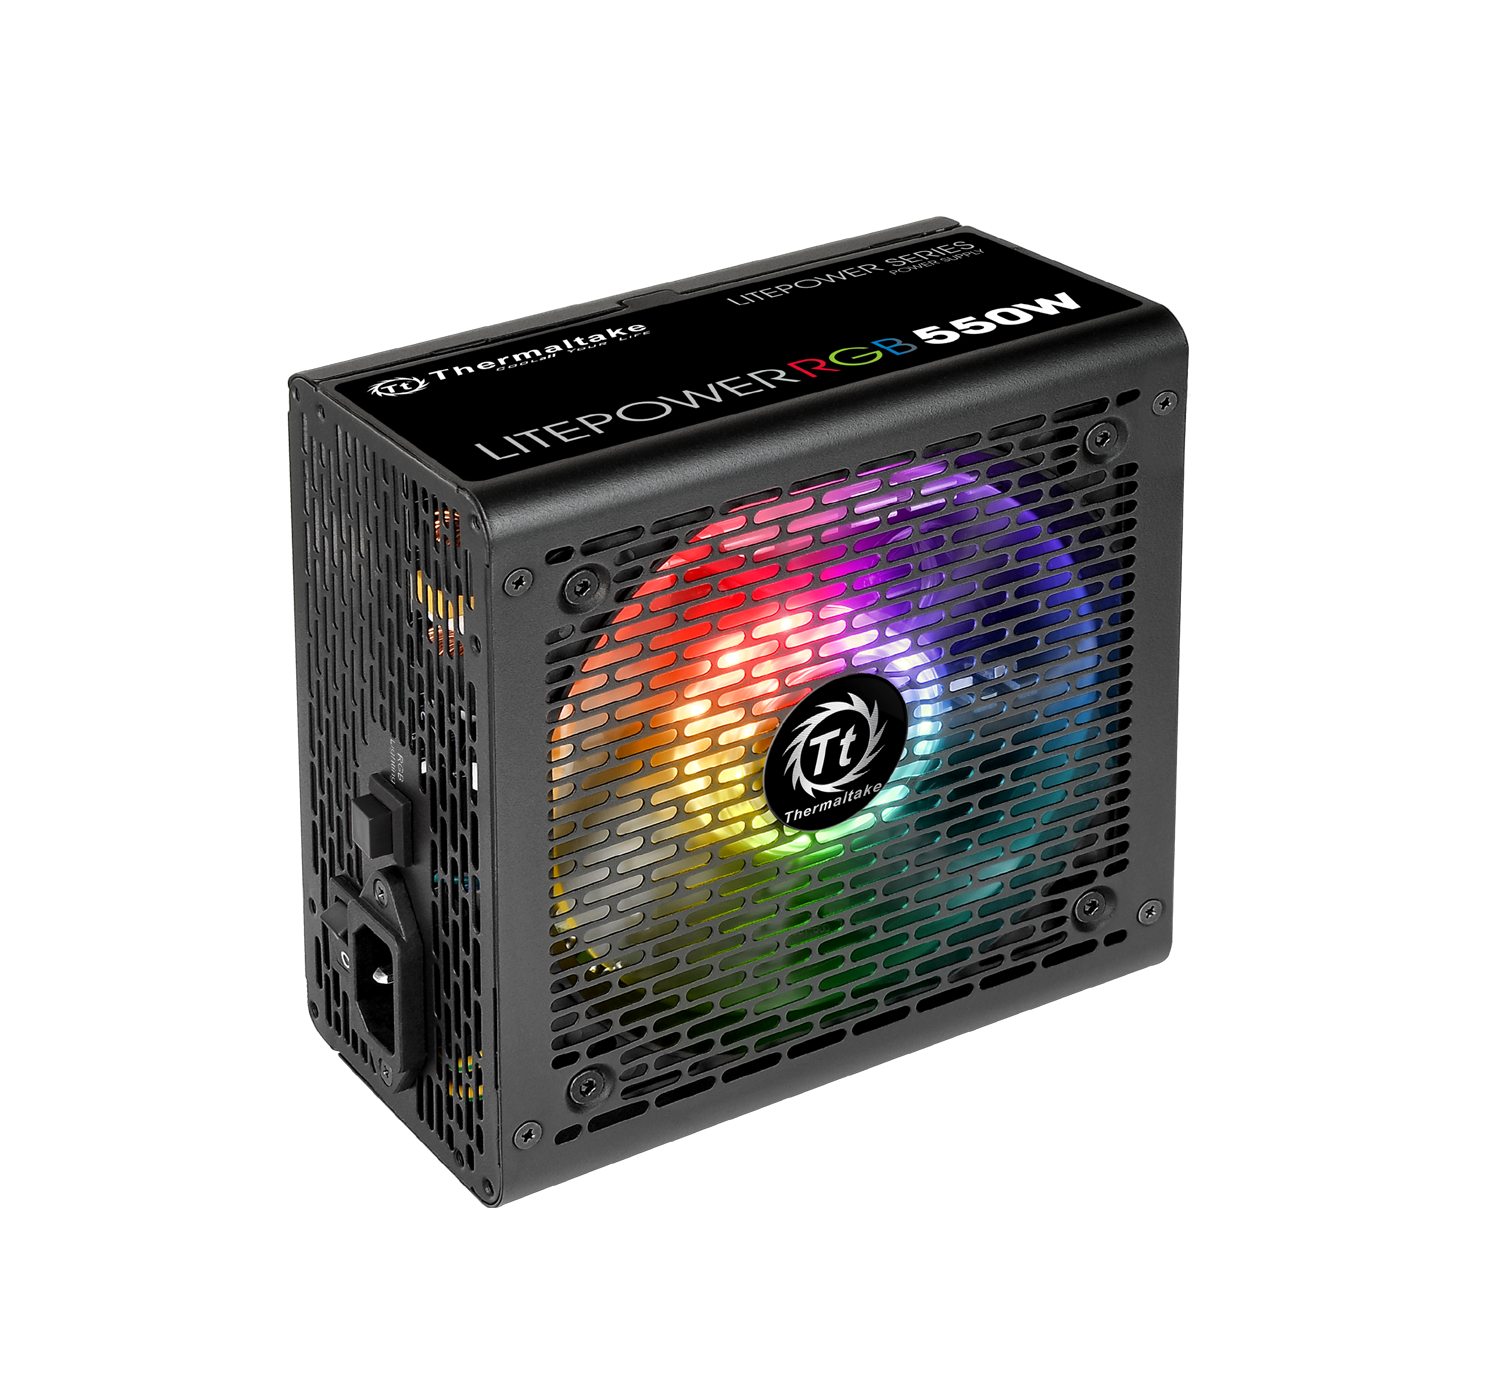 Захранващ блок Thermaltake LitePower 550W RGB (230V)-2